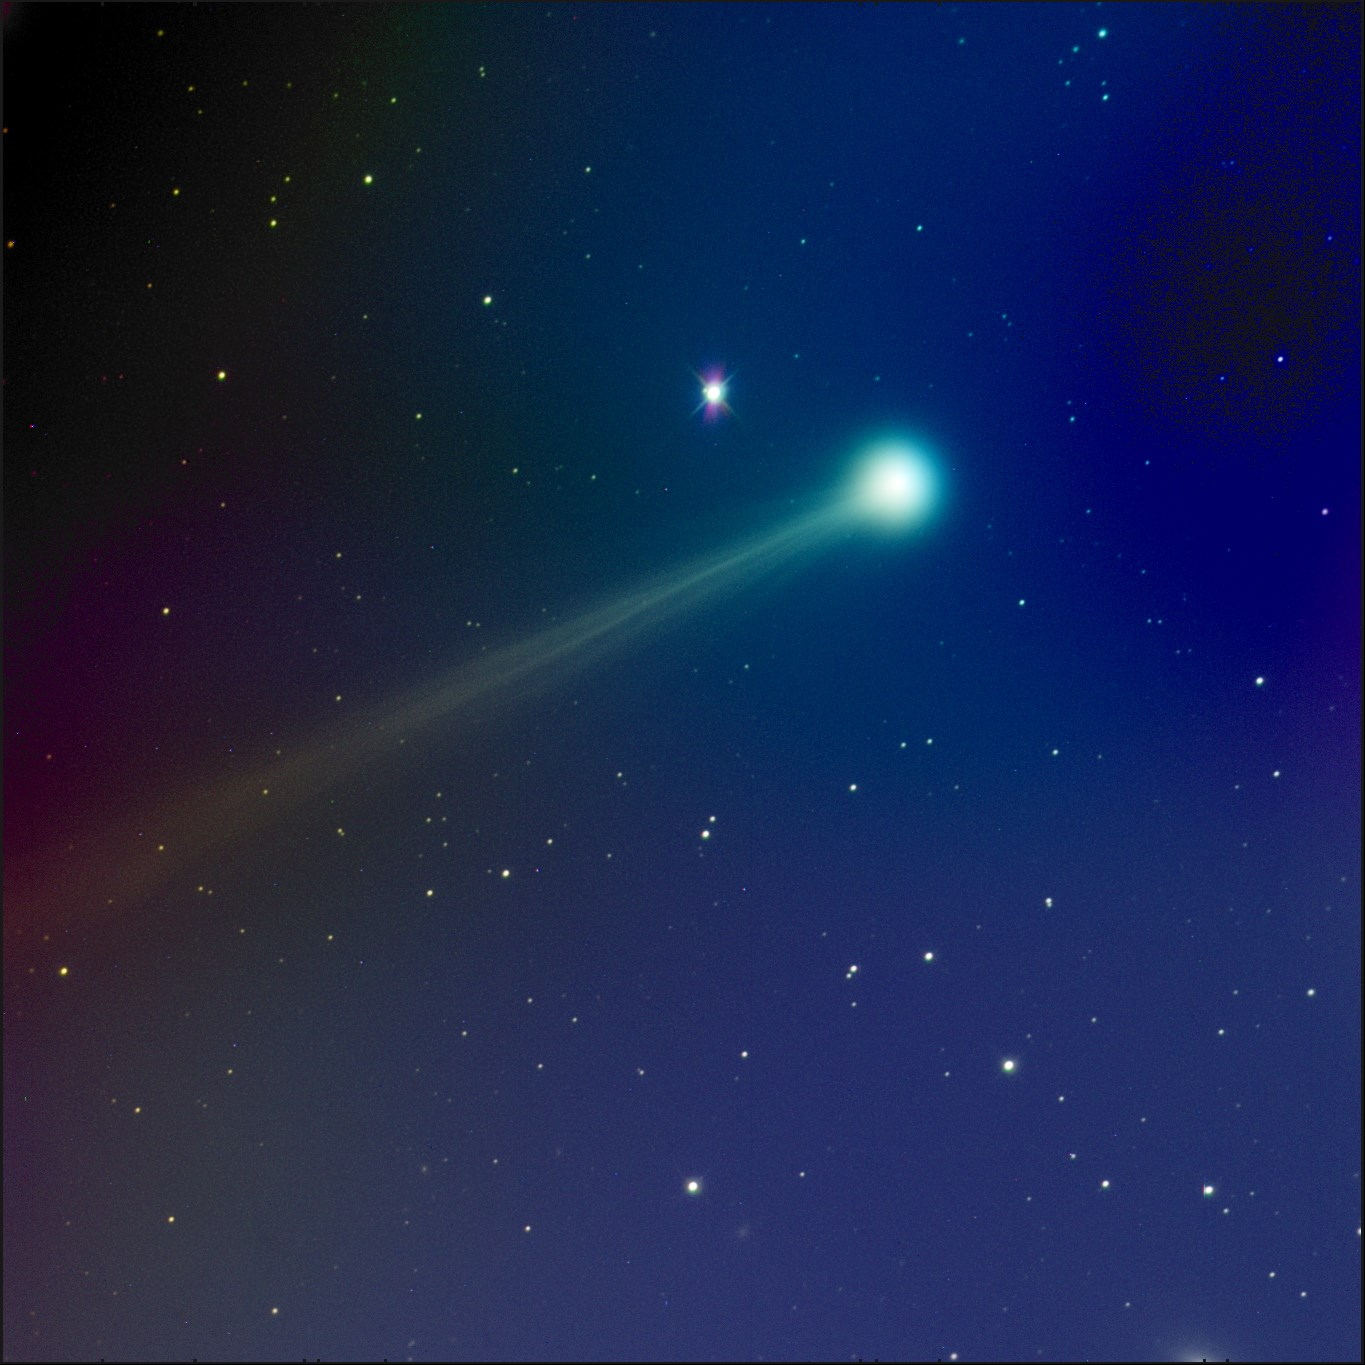 ISON Nov. 14 by Hankey